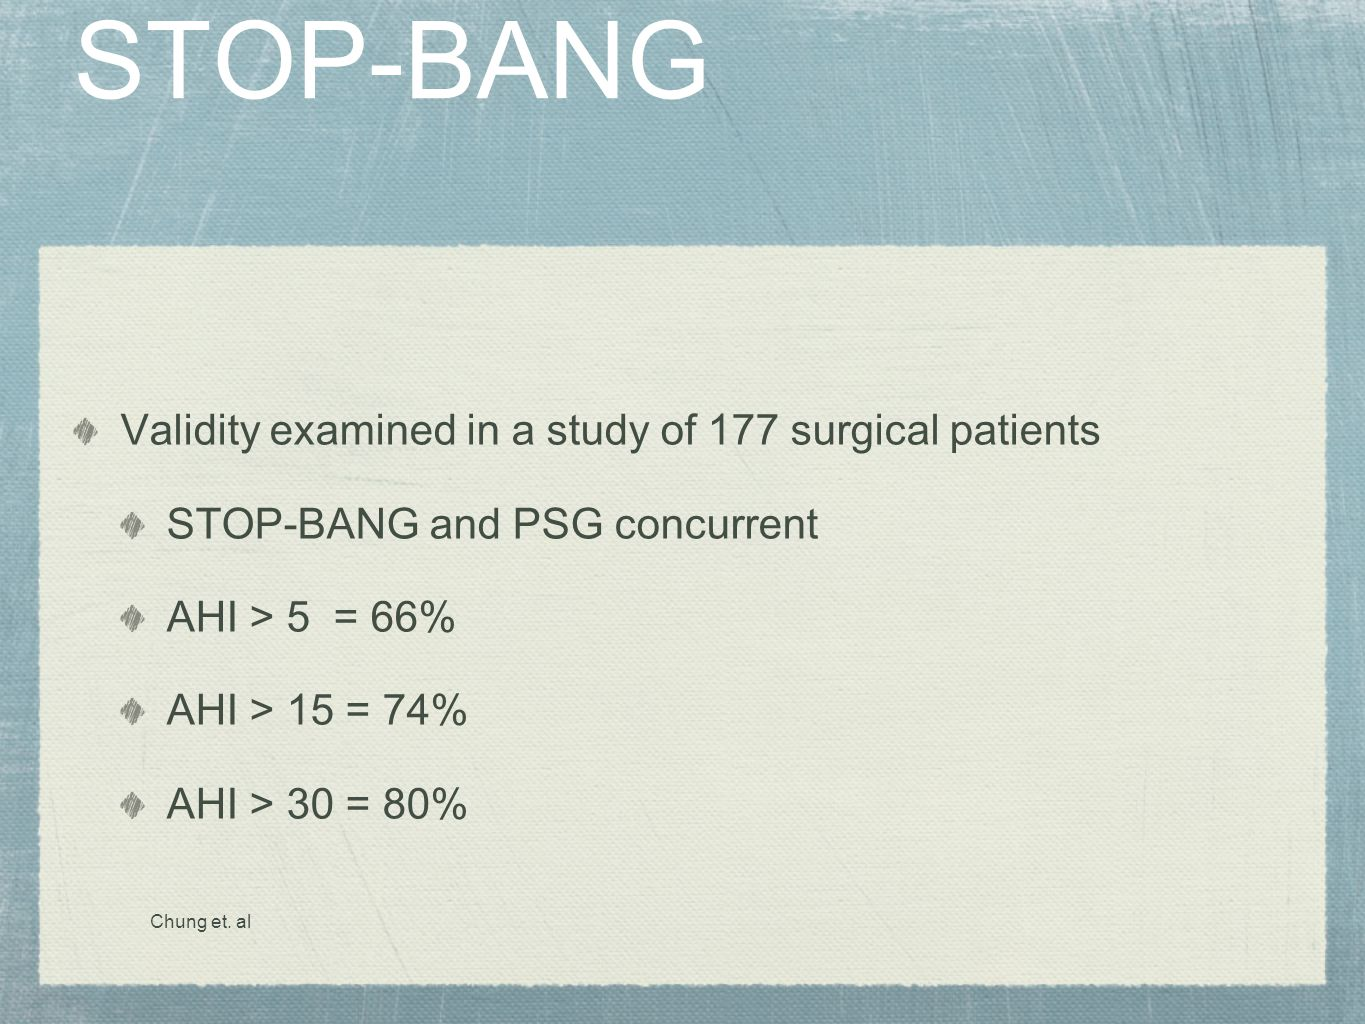 STOP-BANG Validity examined in a study of 177 surgical patients